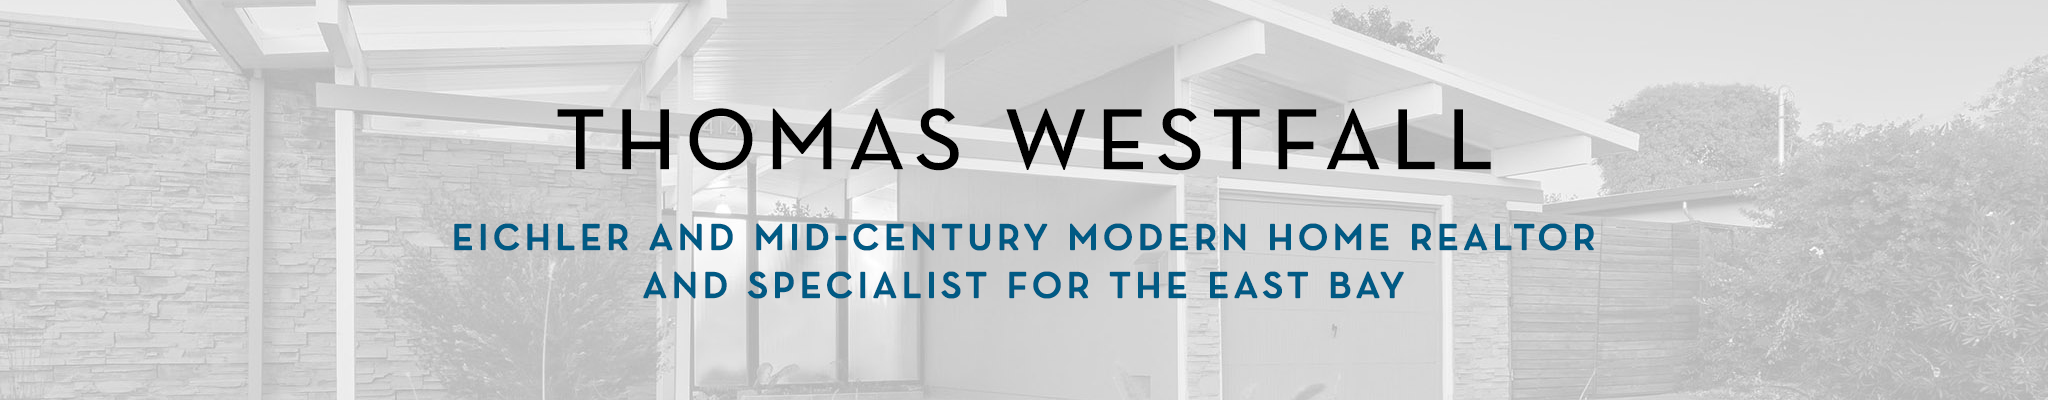 Thomas Westfall Logo